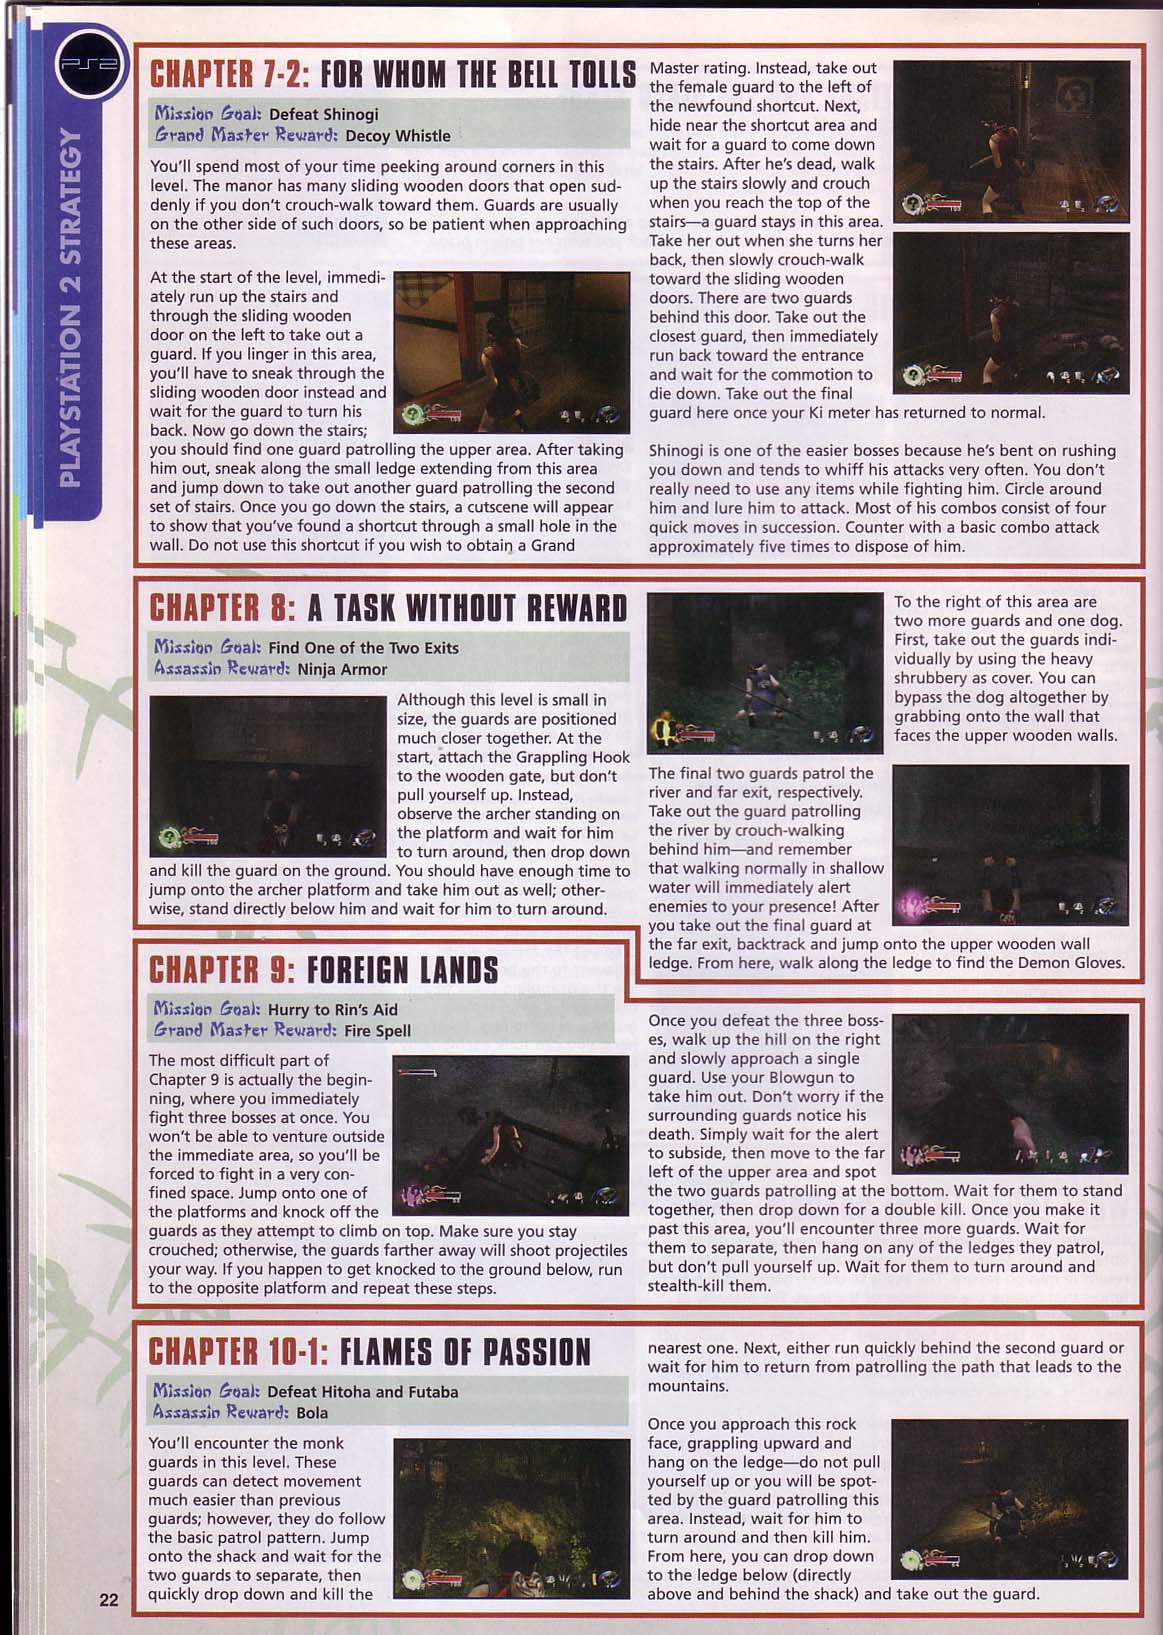 TipsandTricks_April_2005_Tenchu_pg5_Strategy.jpg